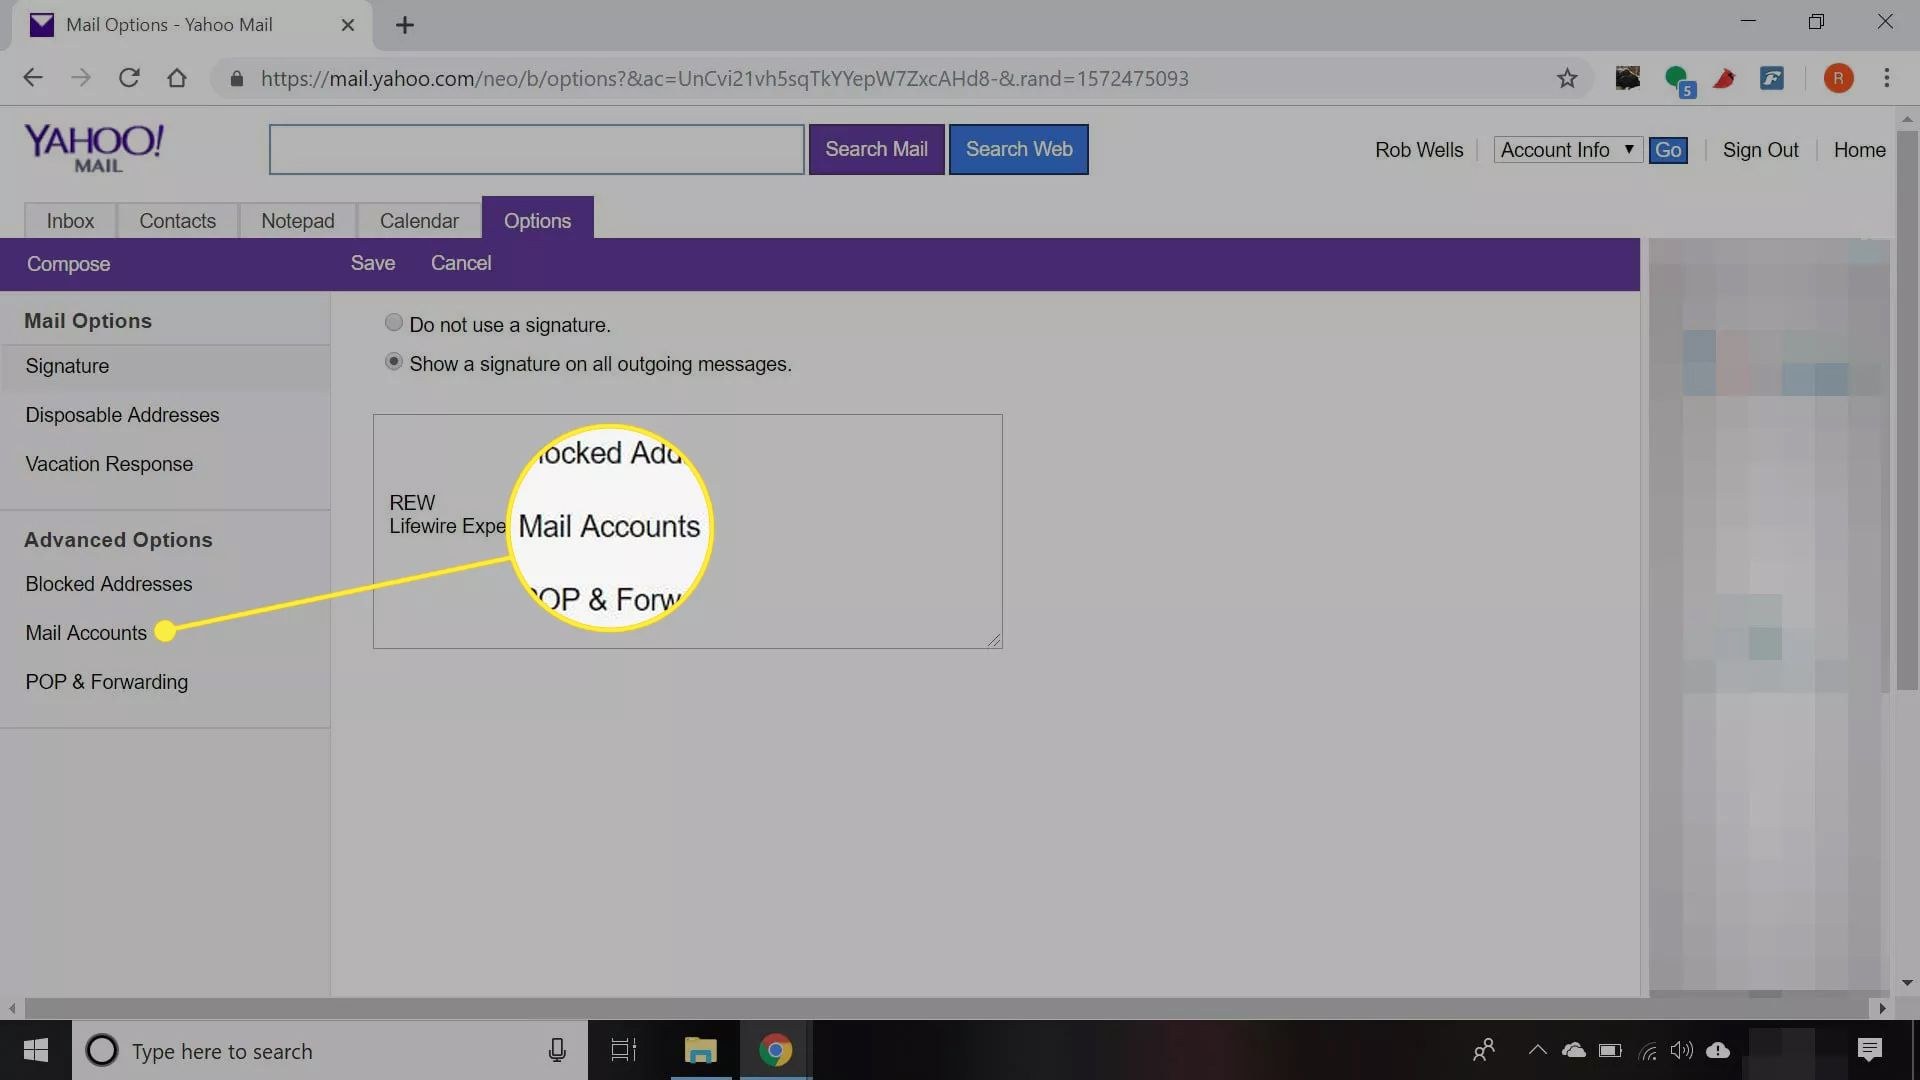 Yahoo Mail with 'Mail Accounts' option highlighted